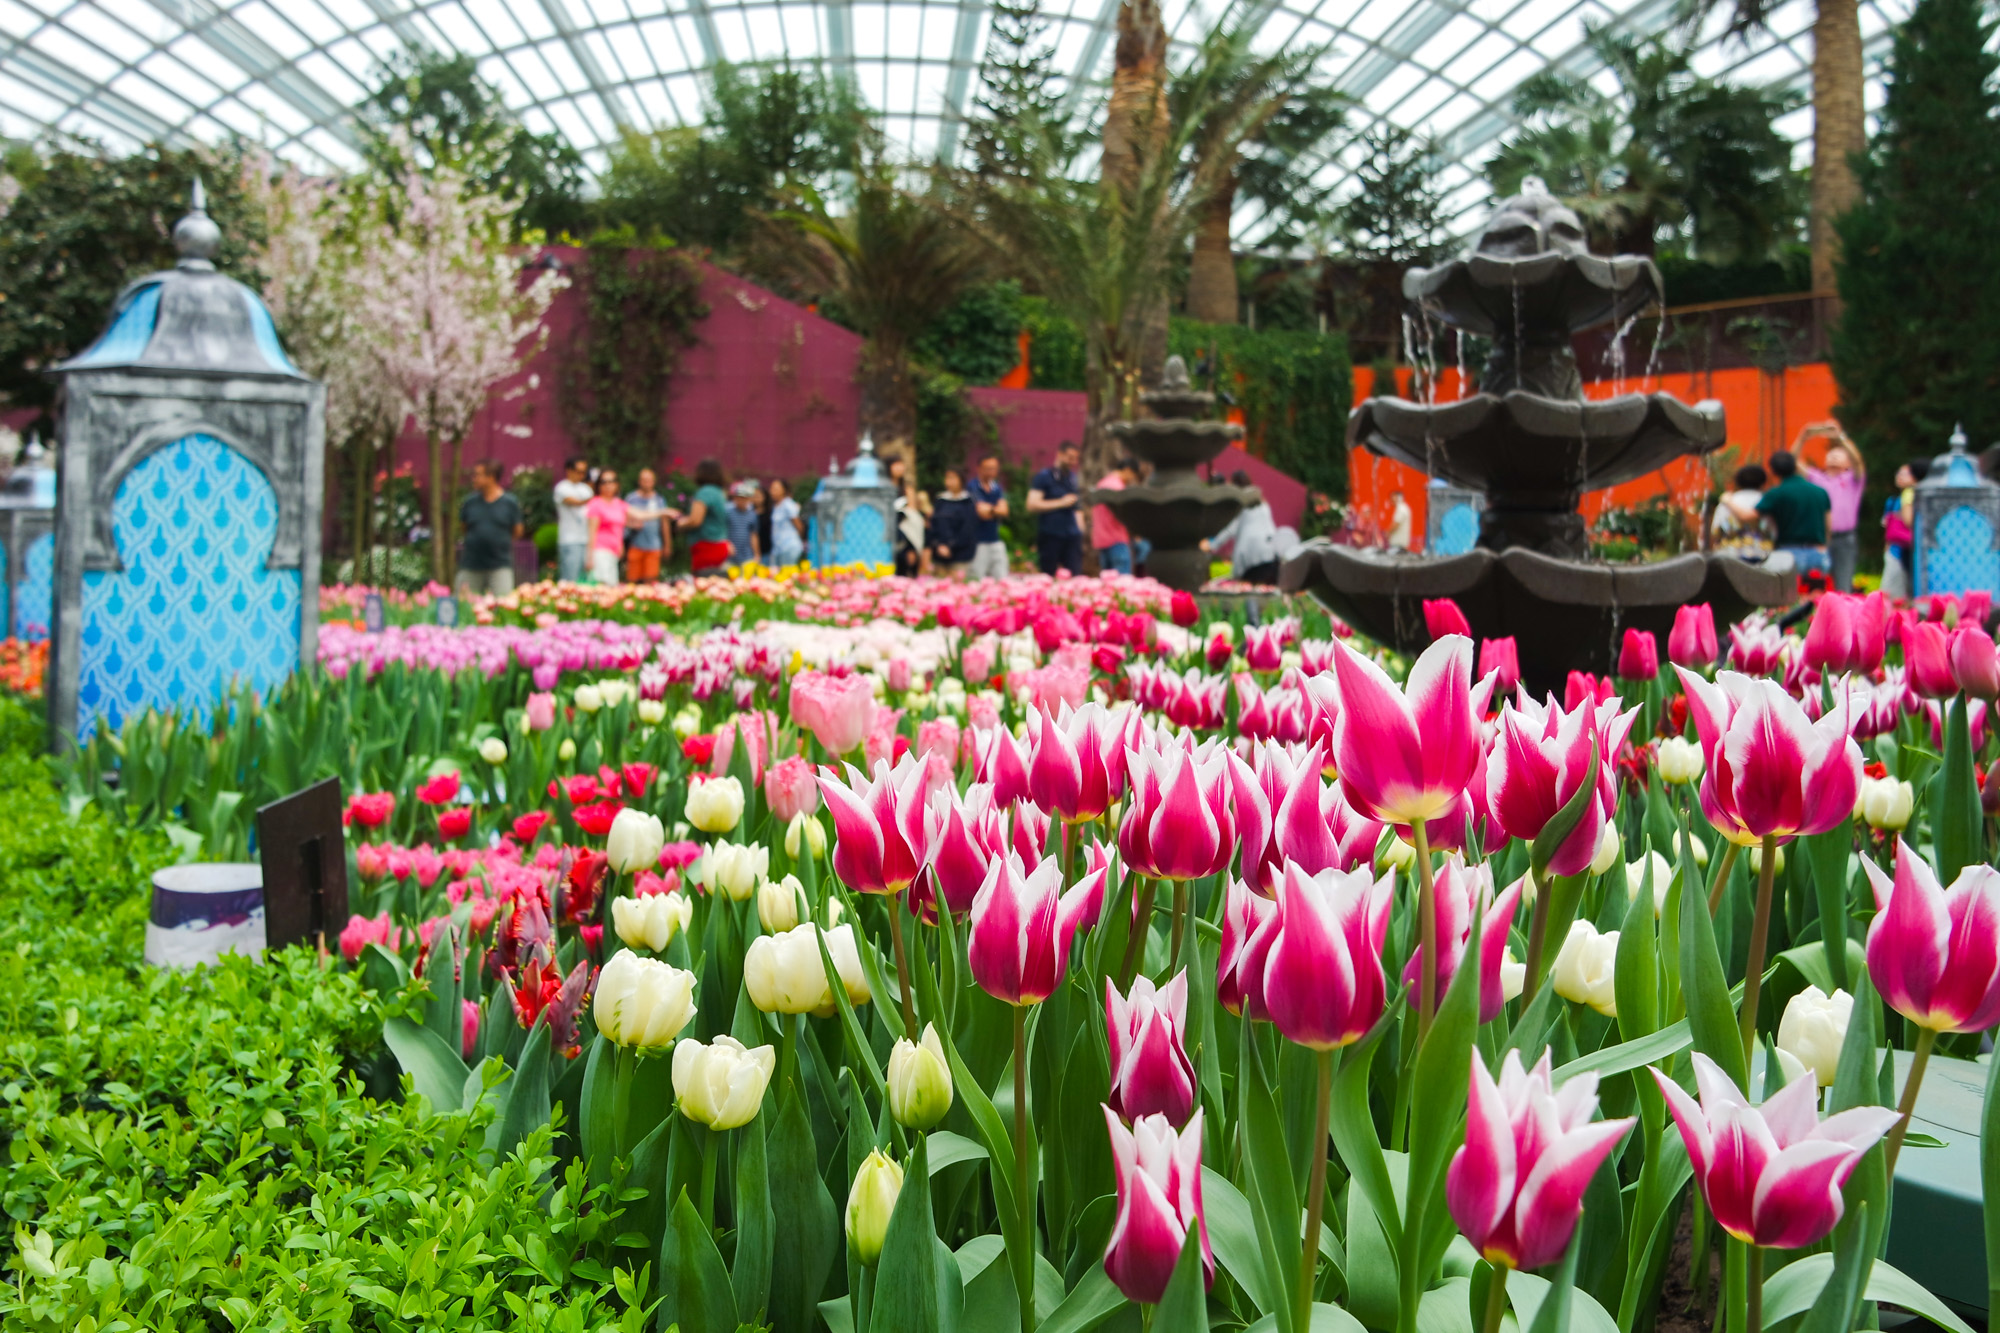 Tulipmania Rediscovered at Gardens by the Bay